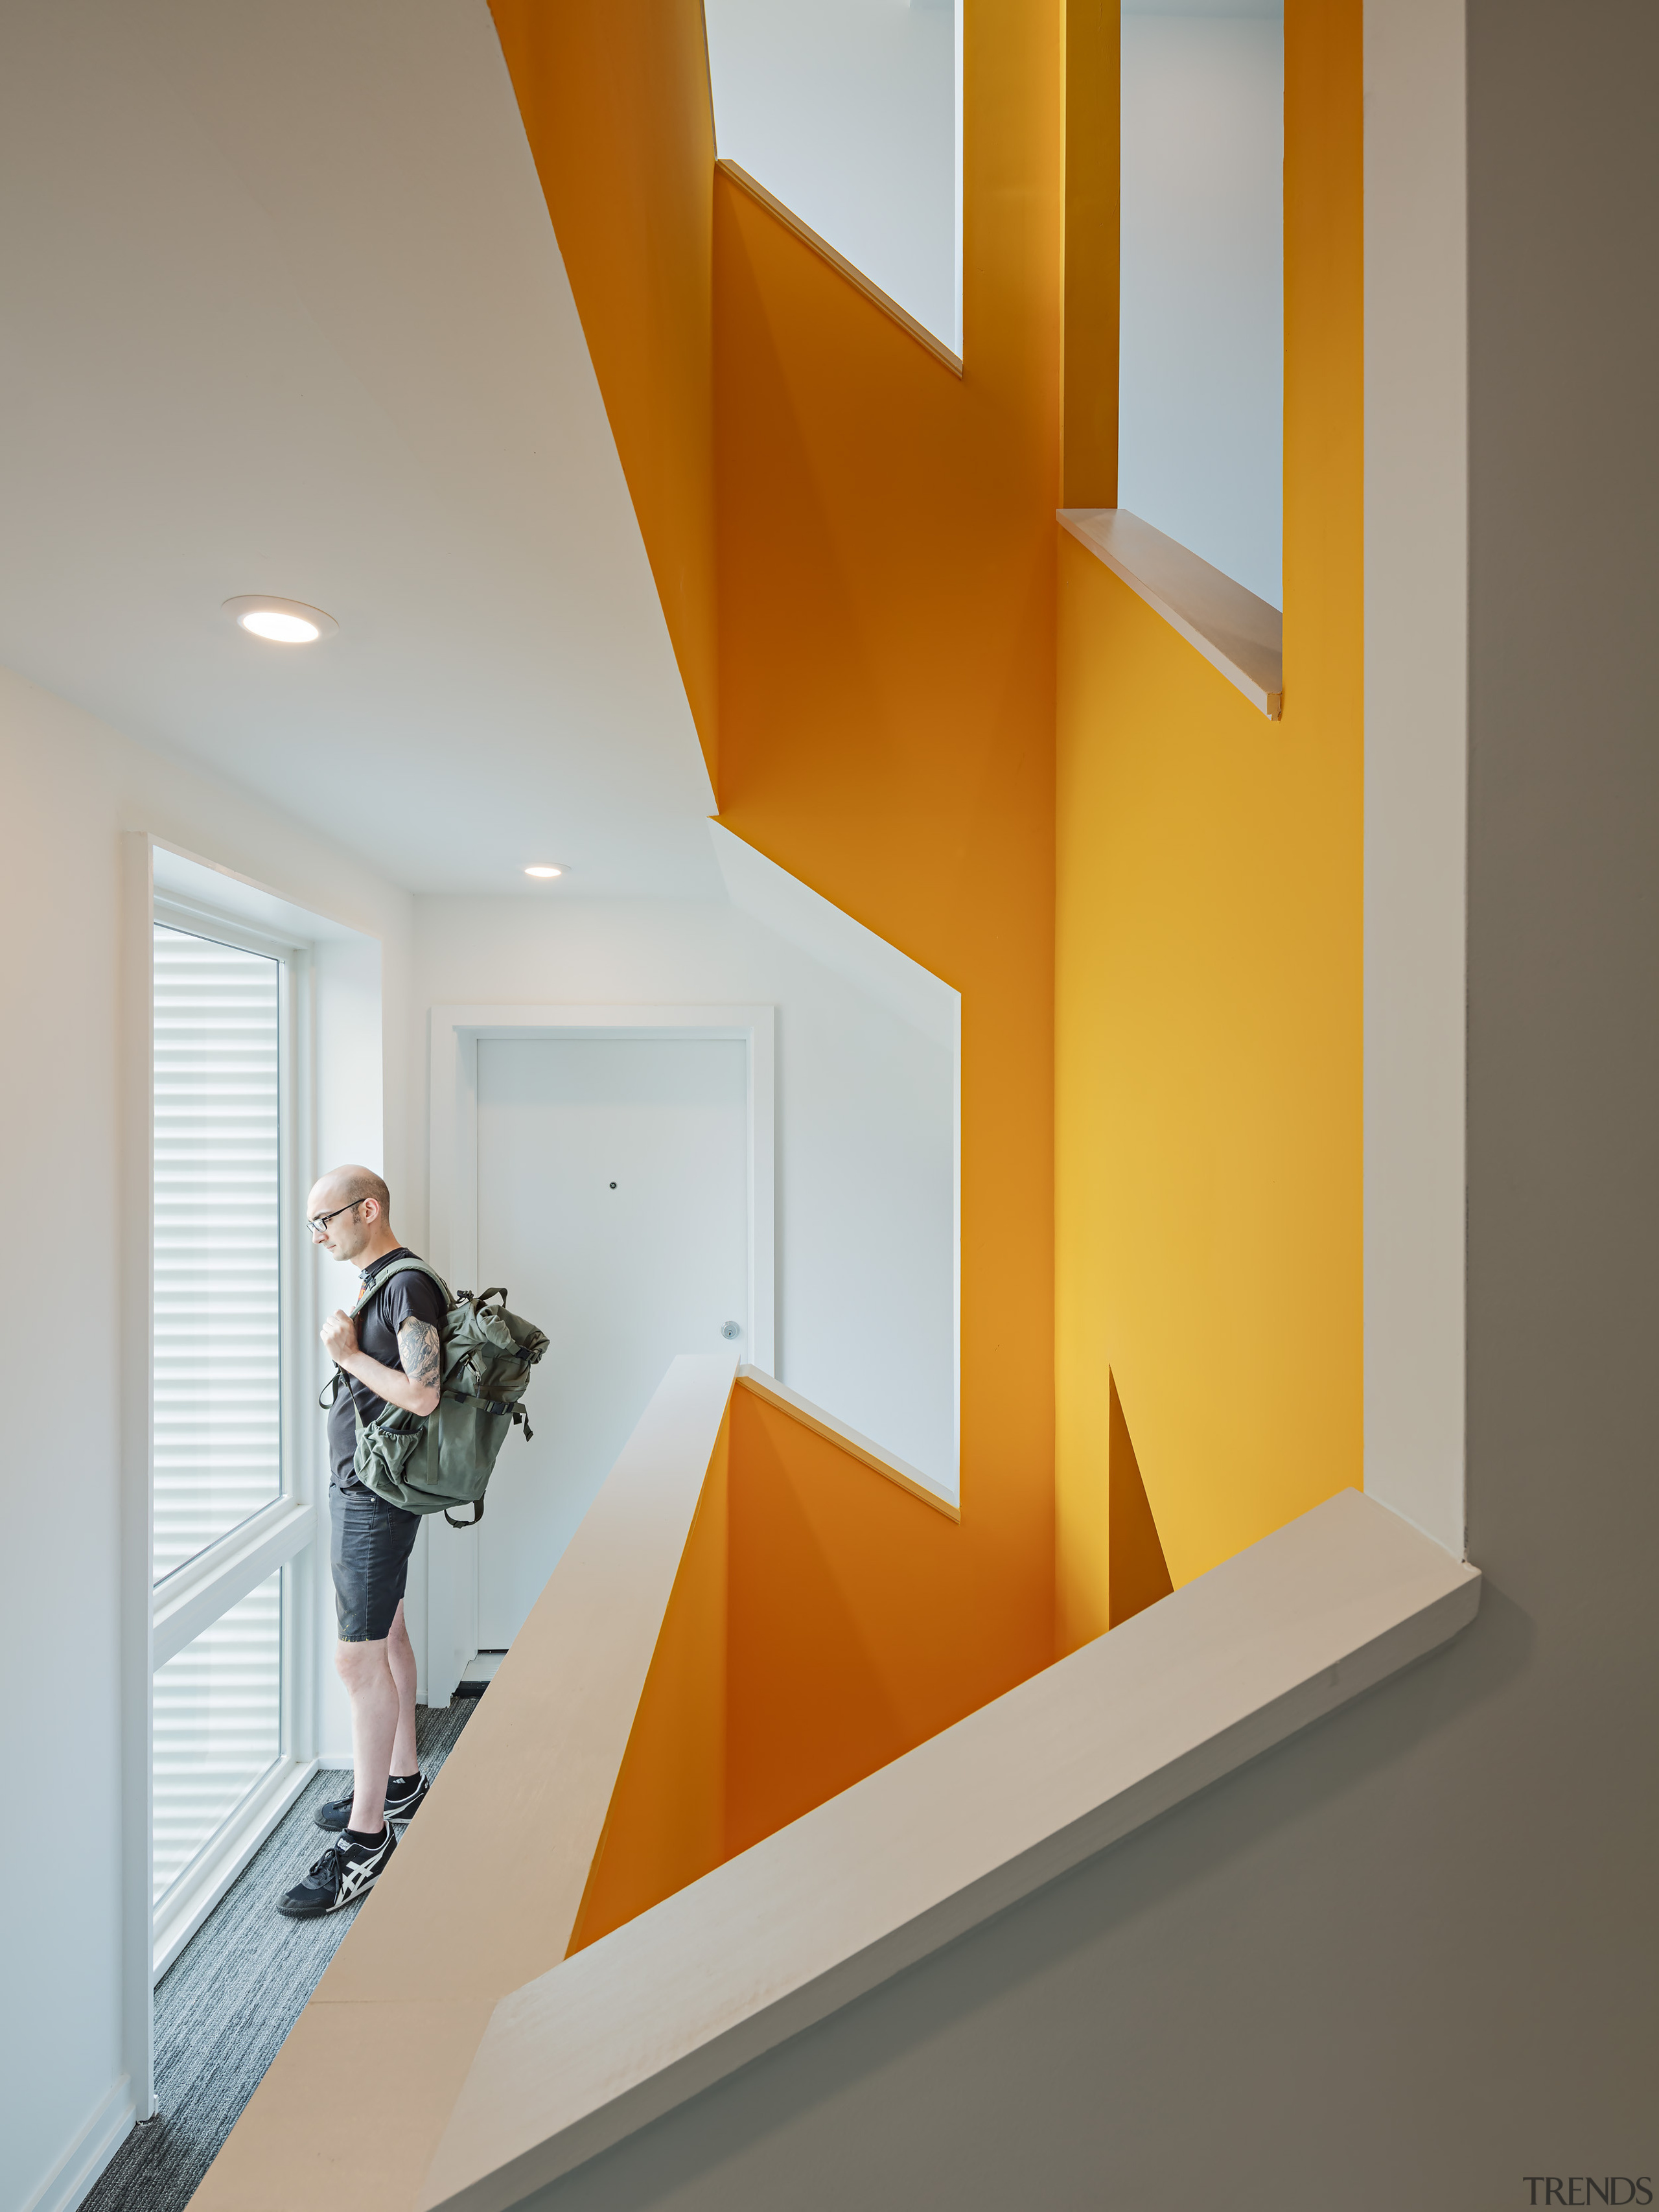 The single stair stairwell maximises space – and